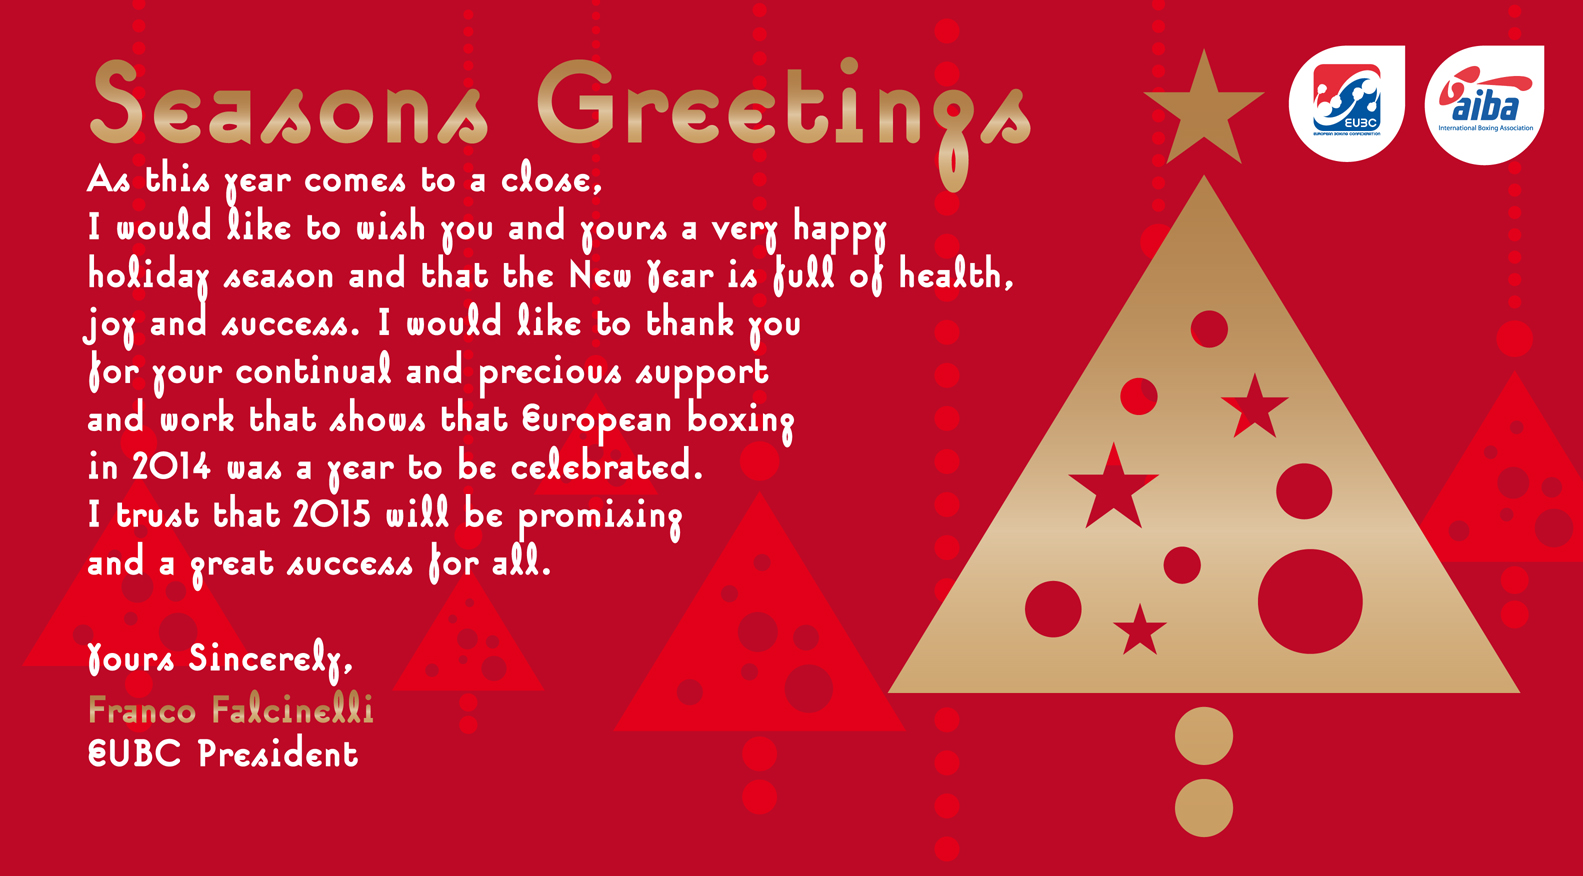 EUBC Office Closed FOR THE HOLIDAY SEASON FROM DECEMBER